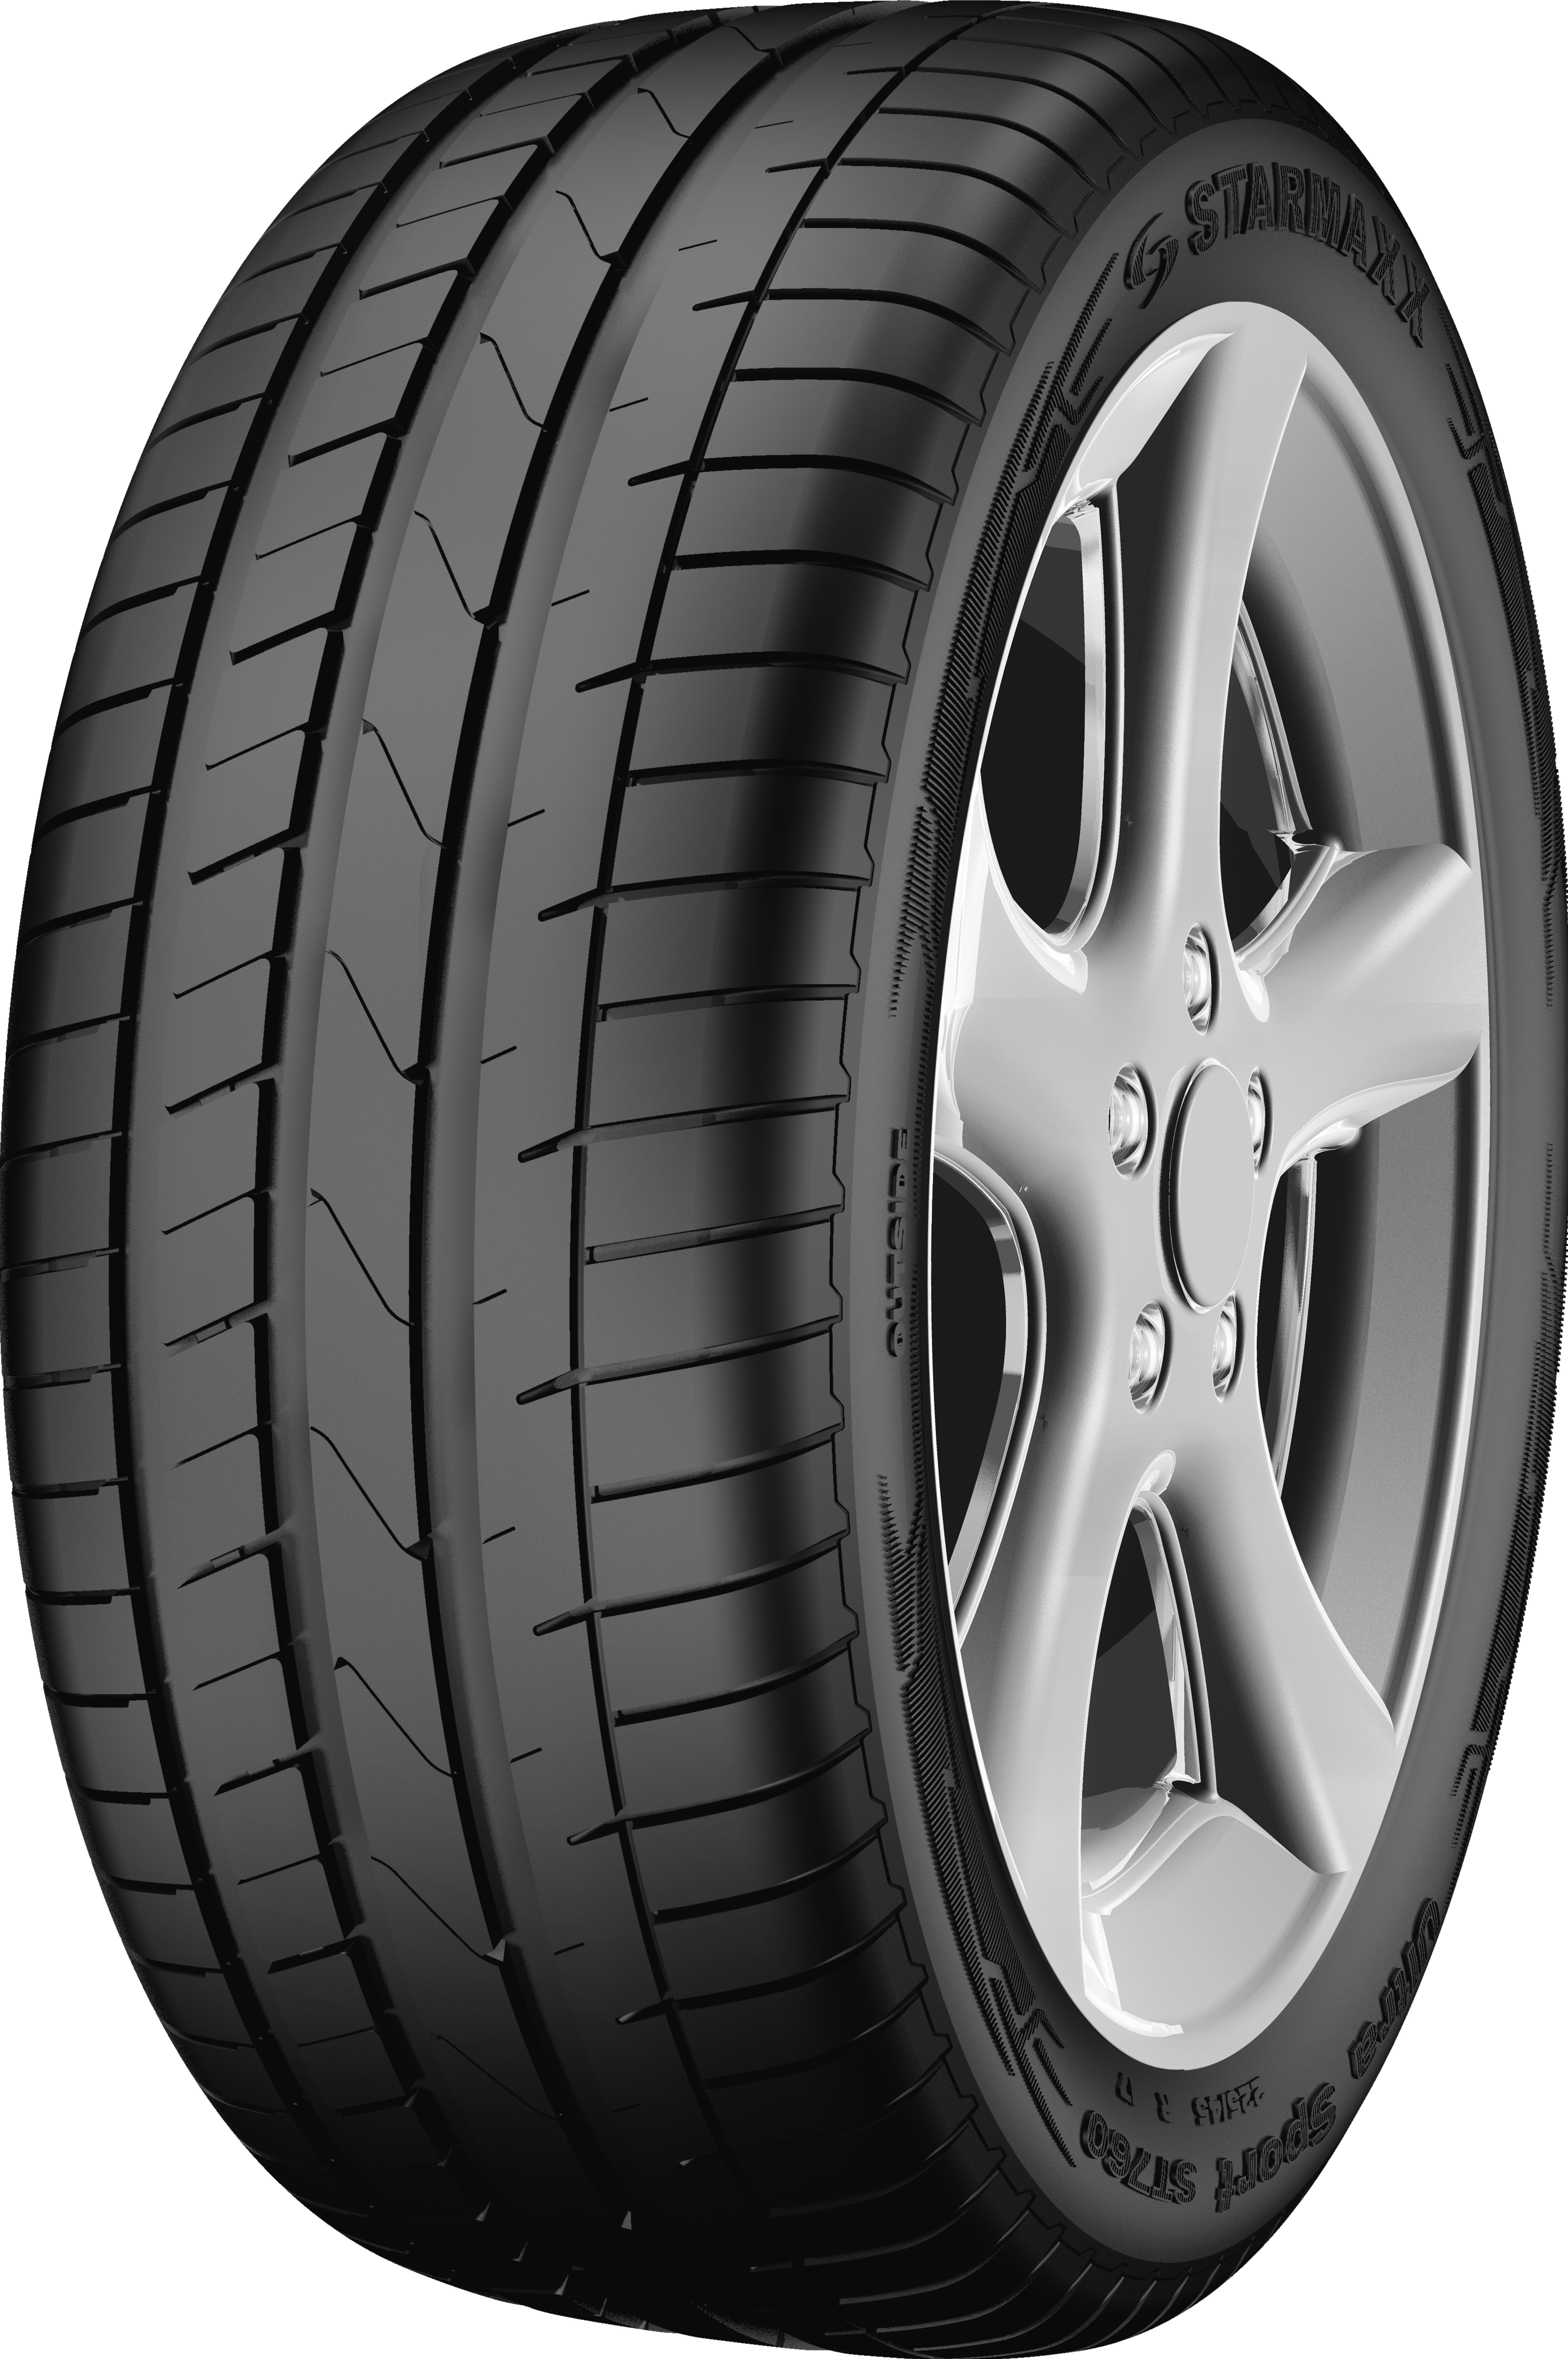 Anvelopa  225/45 ZR19 Ultrasport ST760 Reinforced (Starmaxx) photo